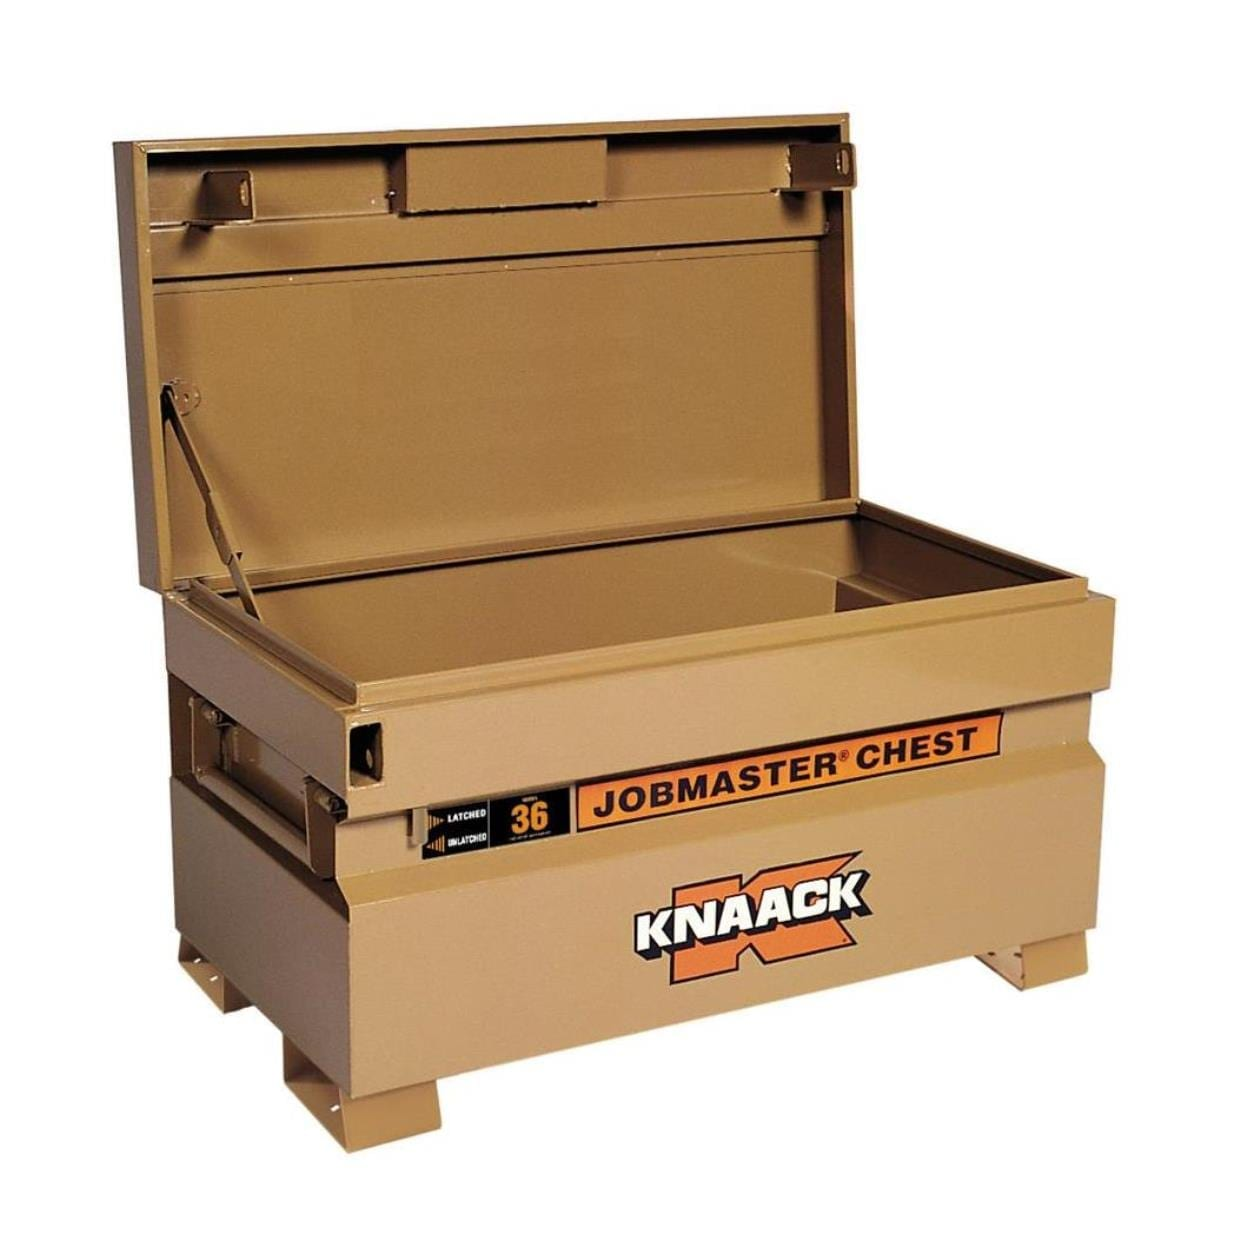 hight resolution of knaack manufacturing company jobmaster chest model 36